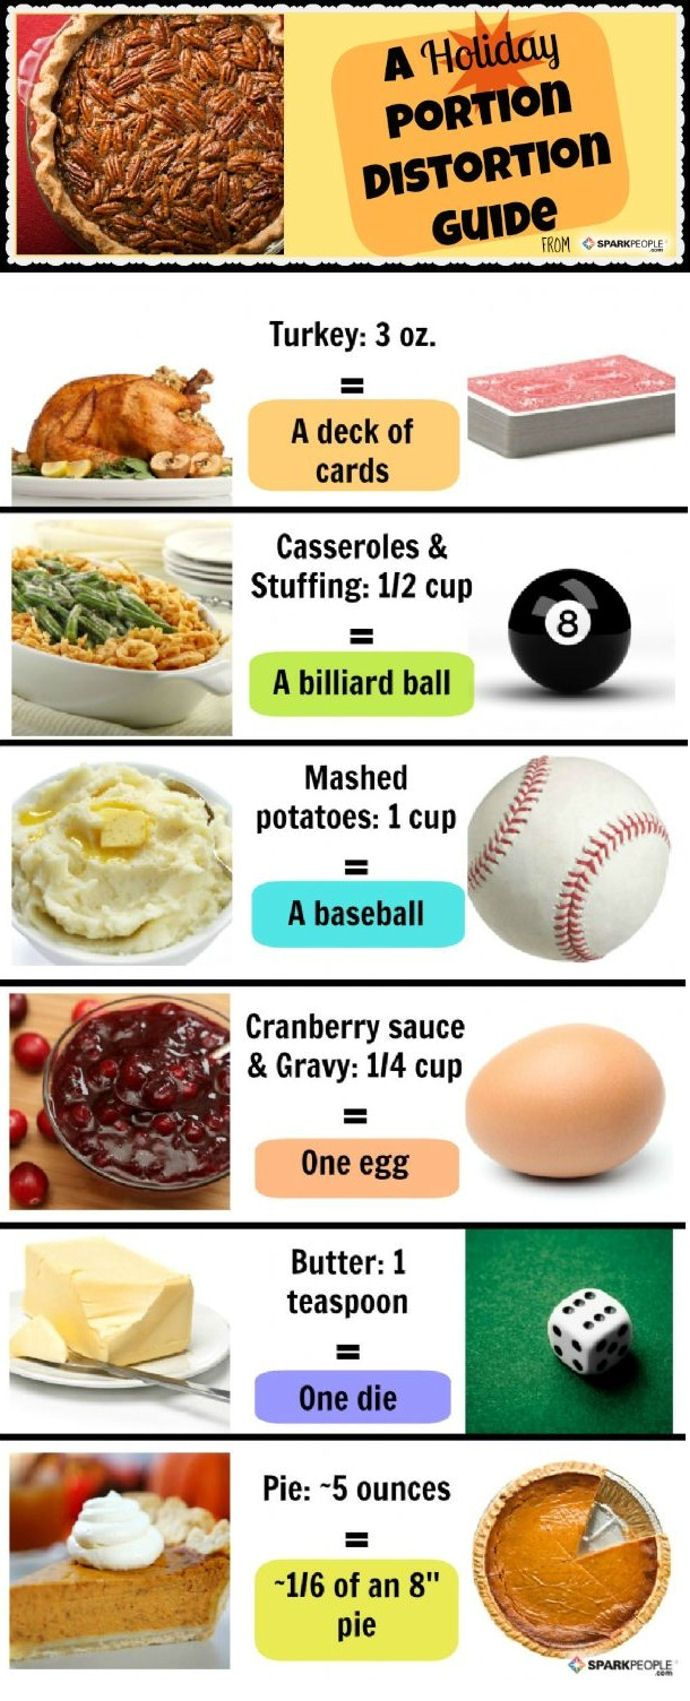 Great guide to perfect Thanksgiving portion sizes